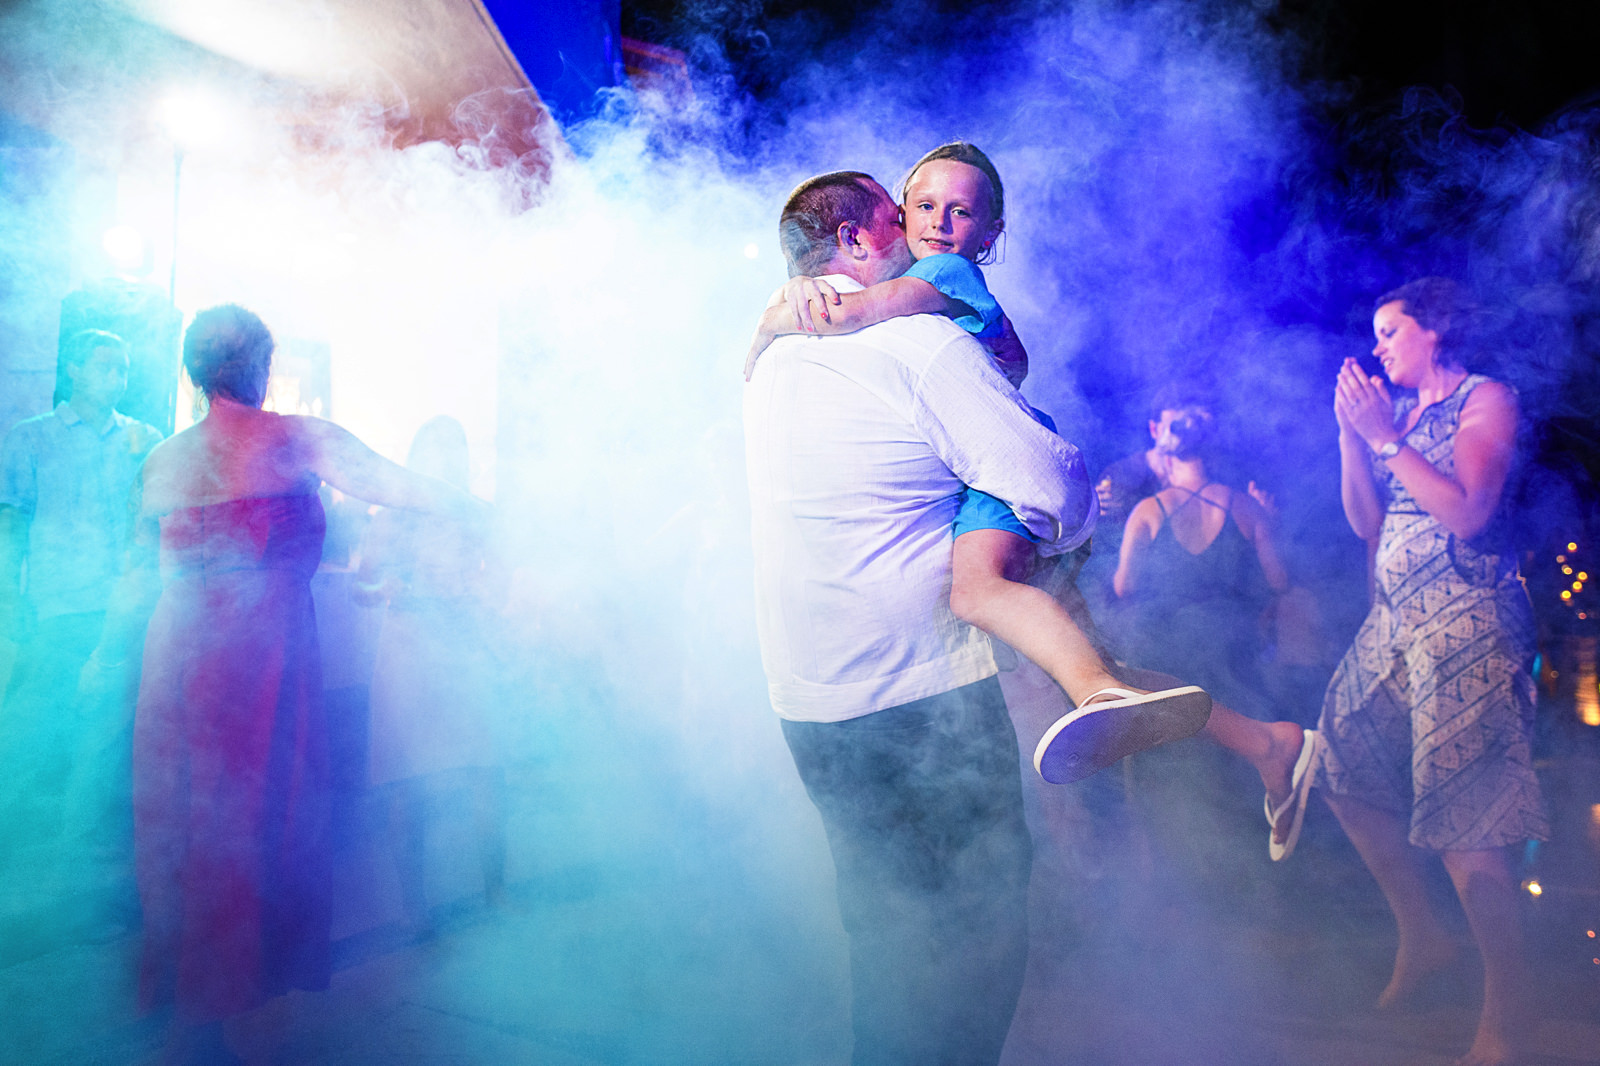 Groom carries her daughter in the middle of the dance floor between smoke and color lights from the DJ